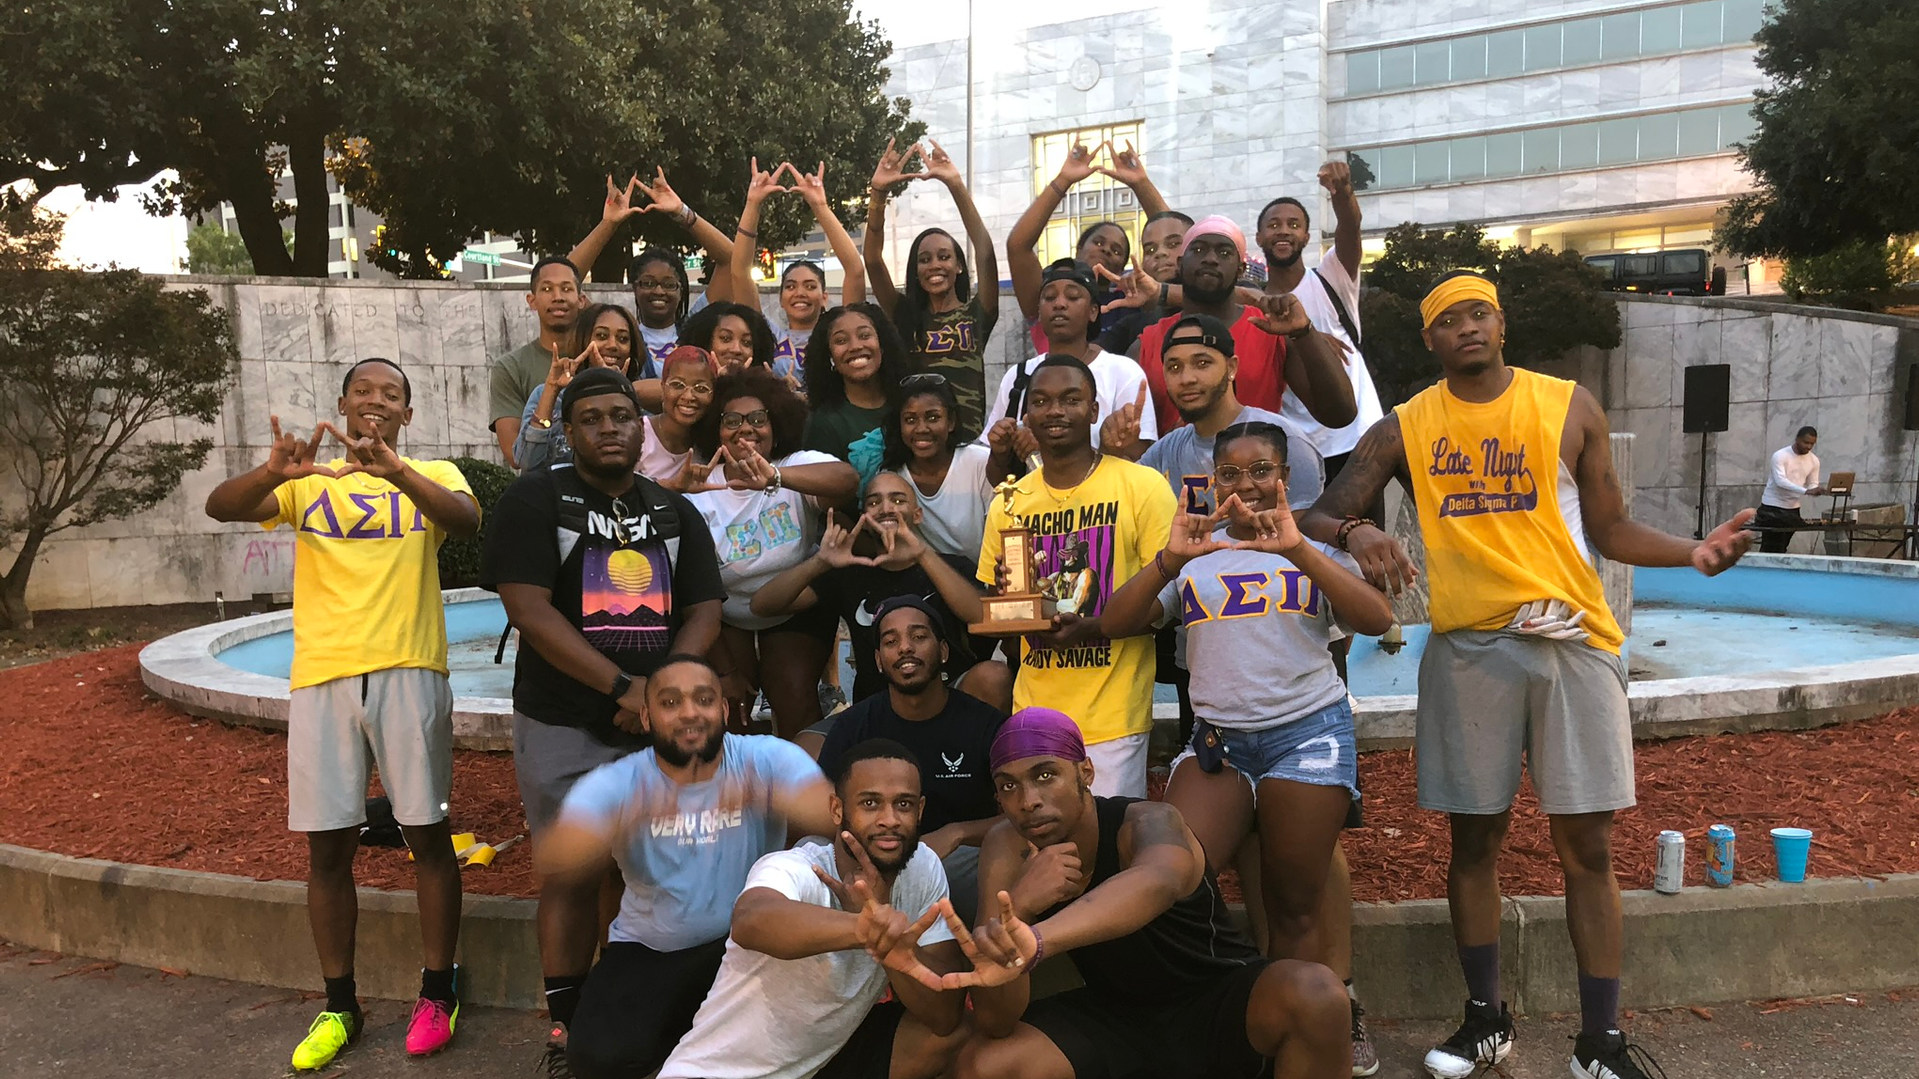 Team Kappa takes home the win at the first annual DSP vs AKPsi flag football event